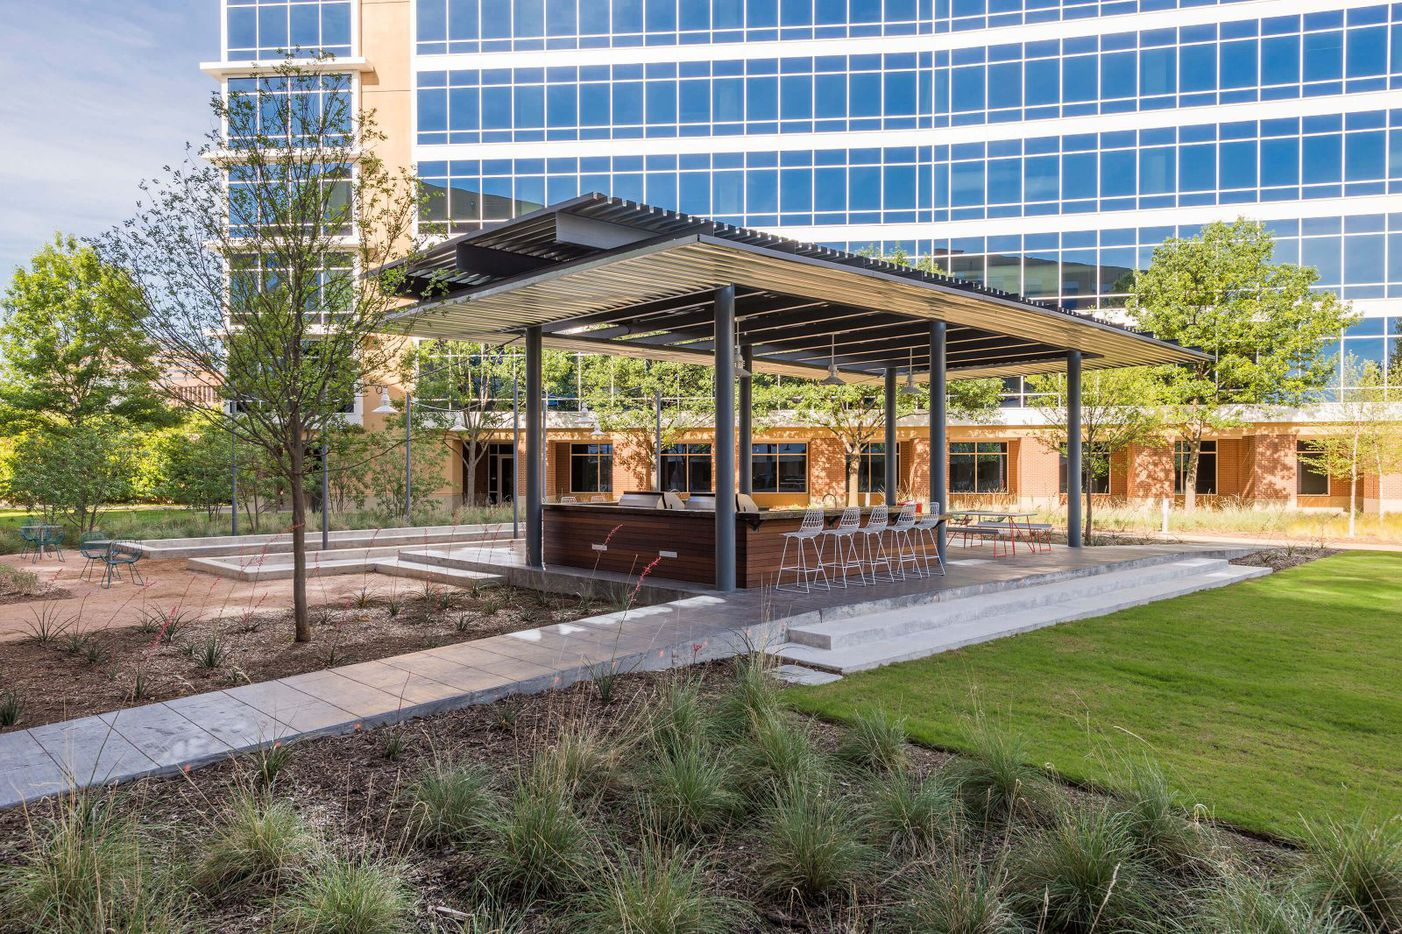 An outdoor serving bar and eating area are among the amenities at the Galatyn Commons office complex in Richardson.